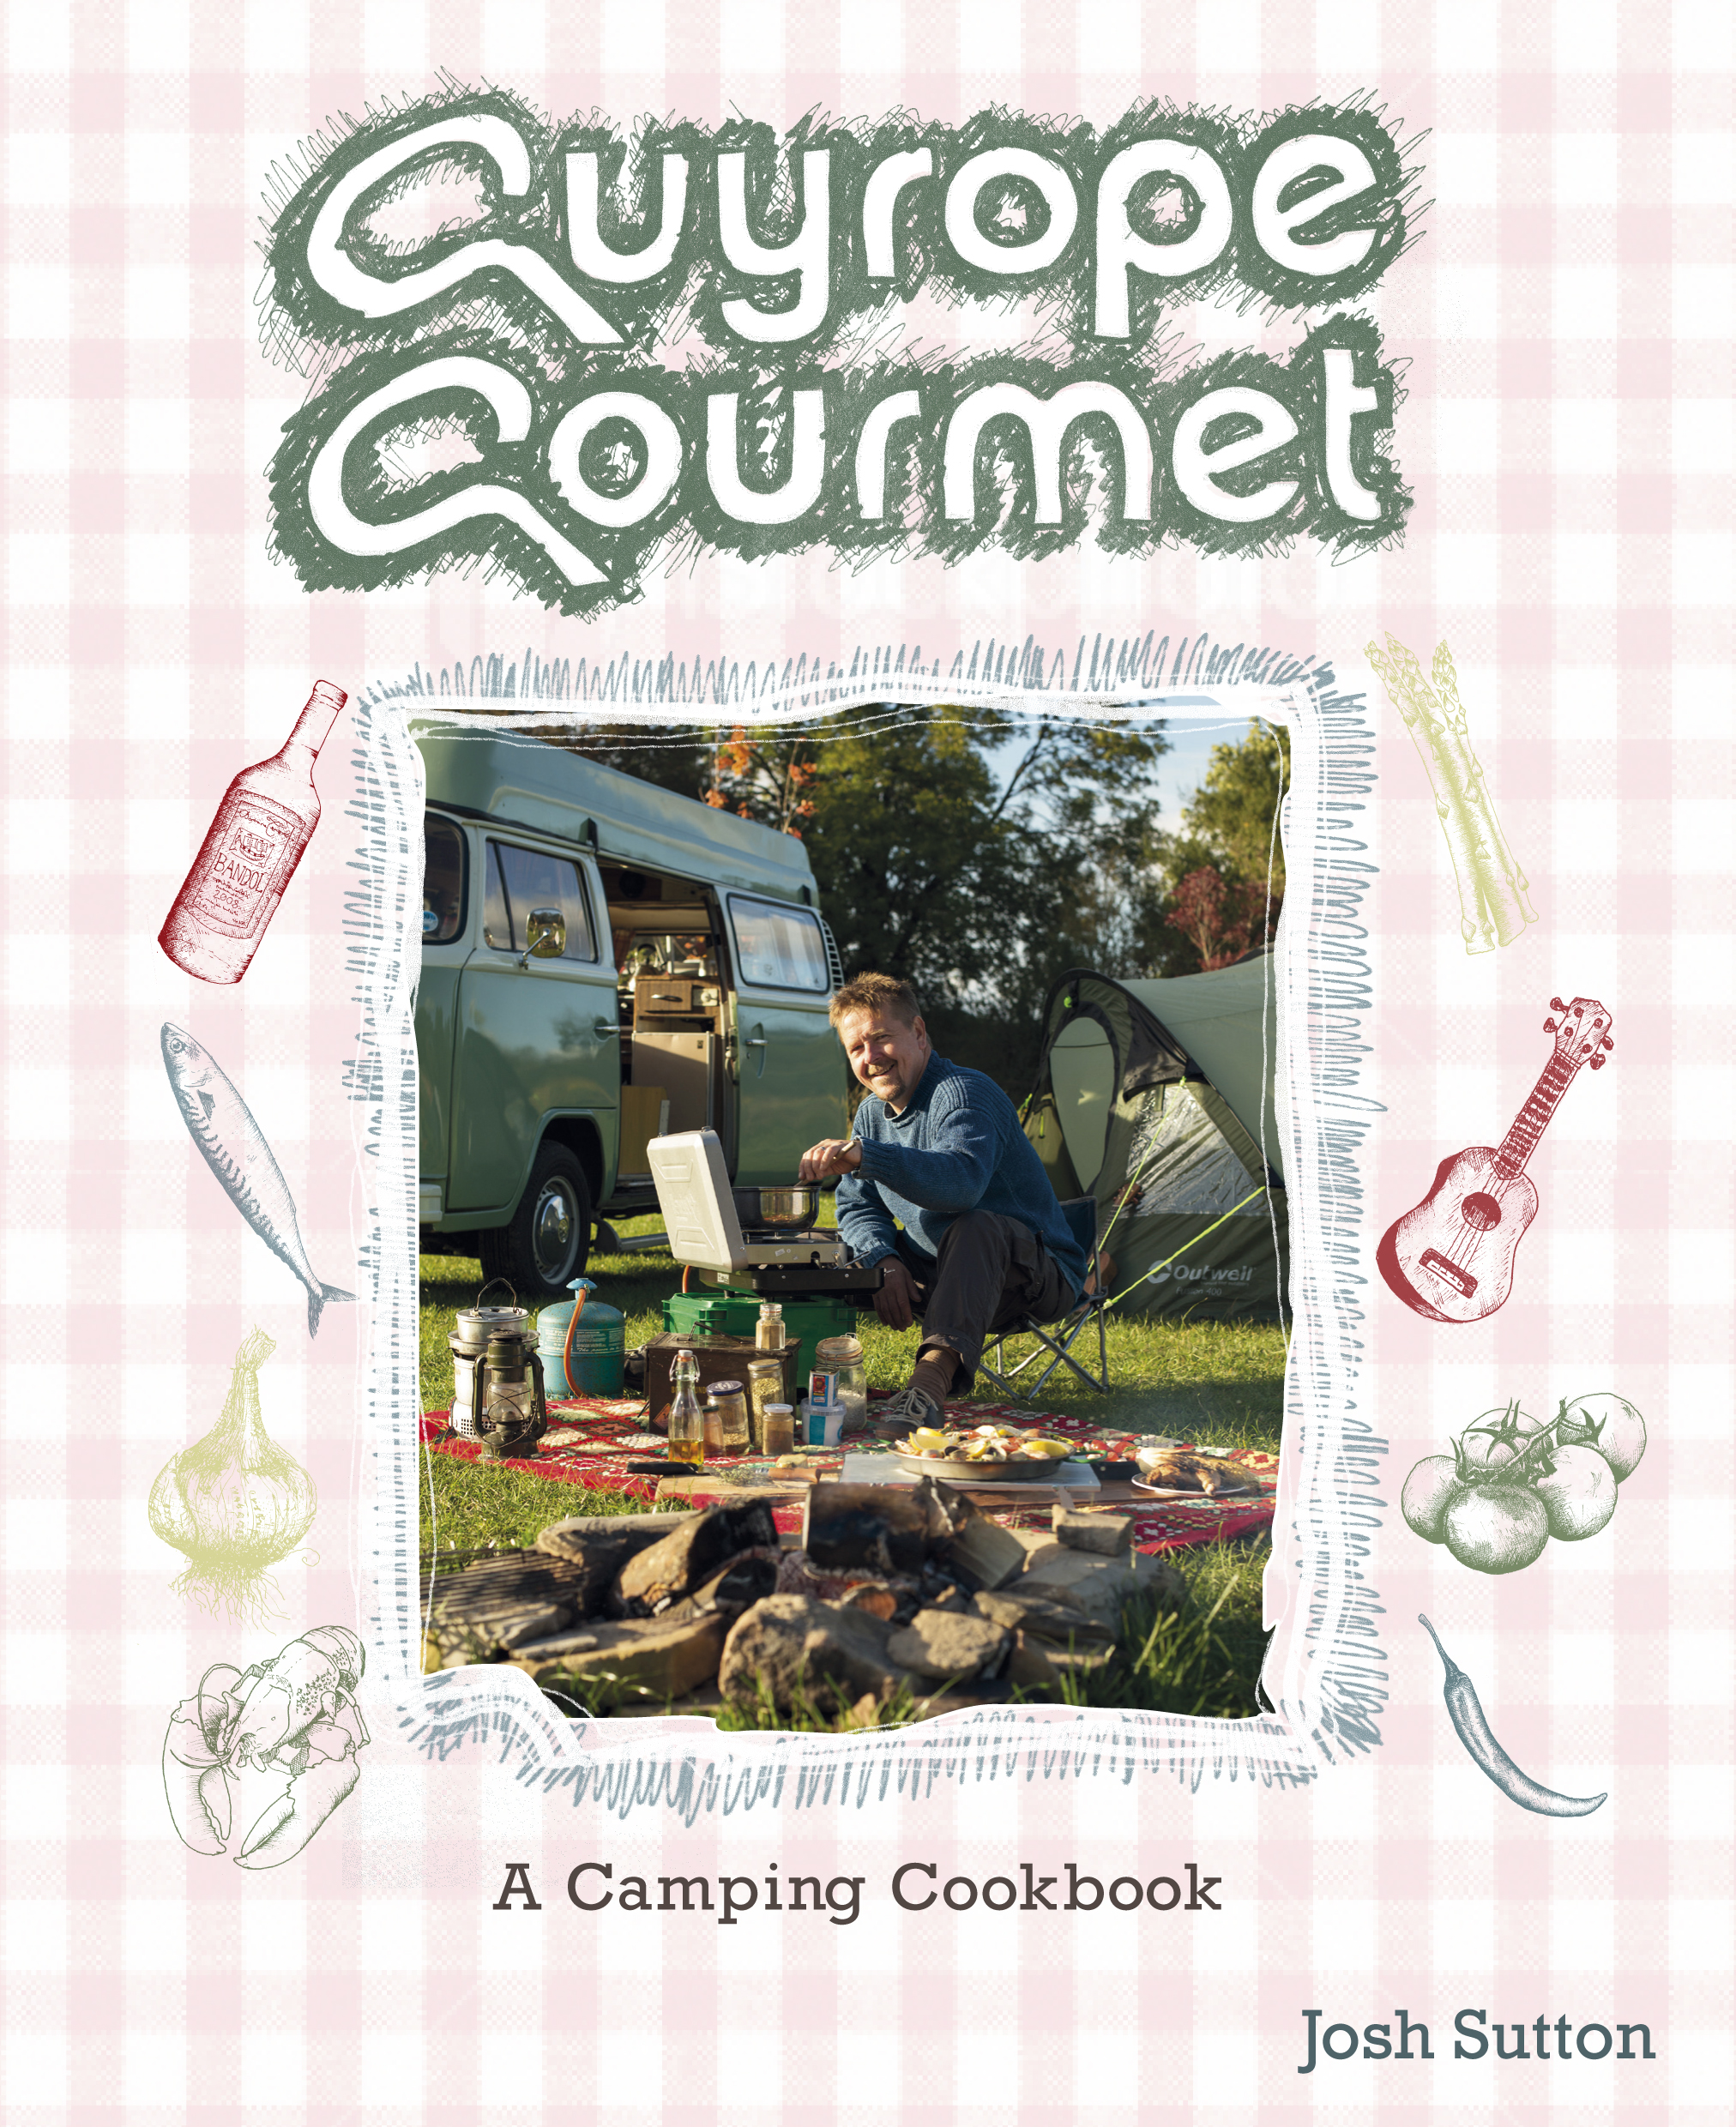 GUYROPE_GOURMET_Cover_full_high_res